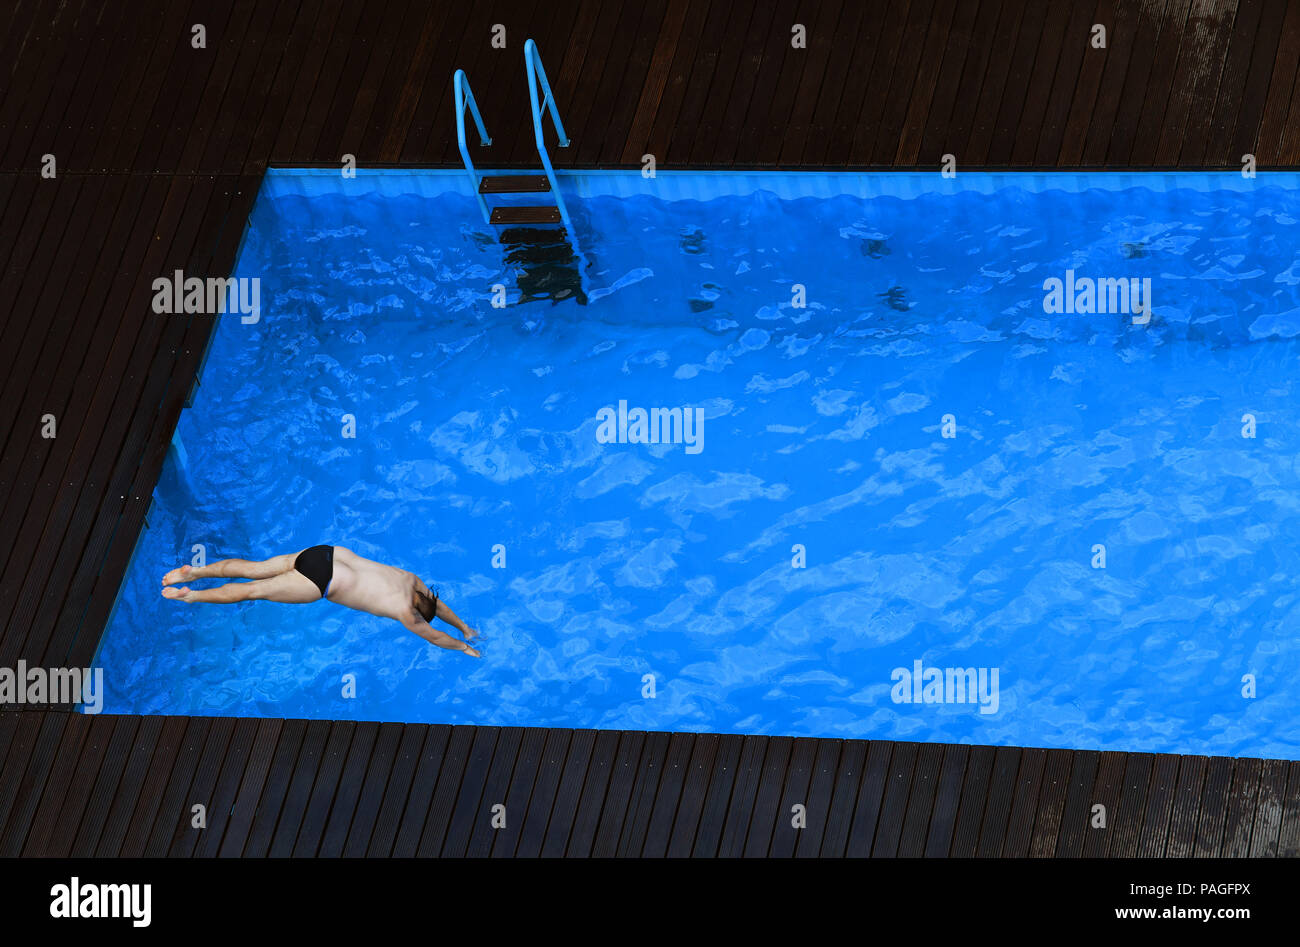 Essen, Germany. 22nd July, 2018. A man jumps into the works swimming pool on the premises of the coking plant of the Zollverein Coal Mine Industrial Complex (Zeche Zollverein). The Frankfurt artists Dirk Paschke and Daniel Milohnic created the work swimming pool in 2001 in the course of the art project 'Zeitgenoessische Kunst und Kritik' (lit. contemporary art and criticism). Credit: Ina Fassbender/dpa - ATTENTION: editorial use only in connection with the latest coverage and only if the credit mentioned above is referenced in full/dpa/Alamy Live News - Stock Image